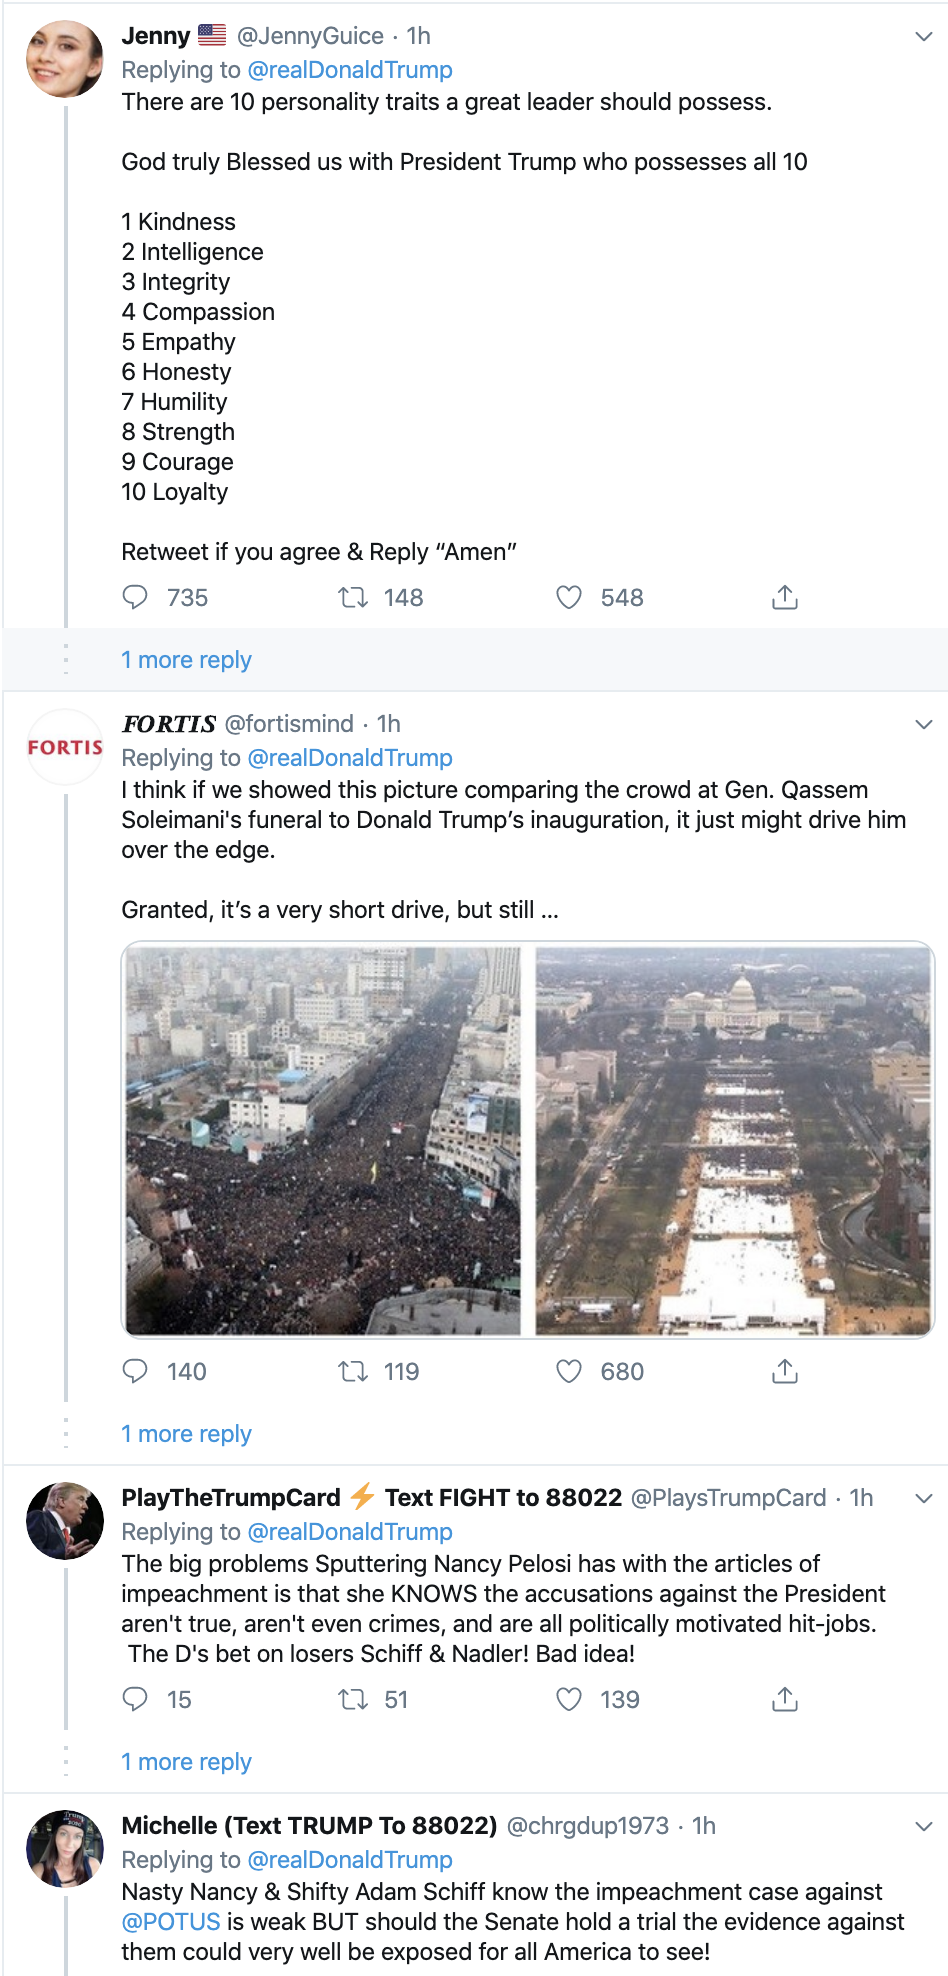 Screen-Shot-2020-01-09-at-8.10.14-AM Trump Claims Pelosi's Articles of Impeachment Not Valid Corruption Crime Featured Impeachment Top Stories